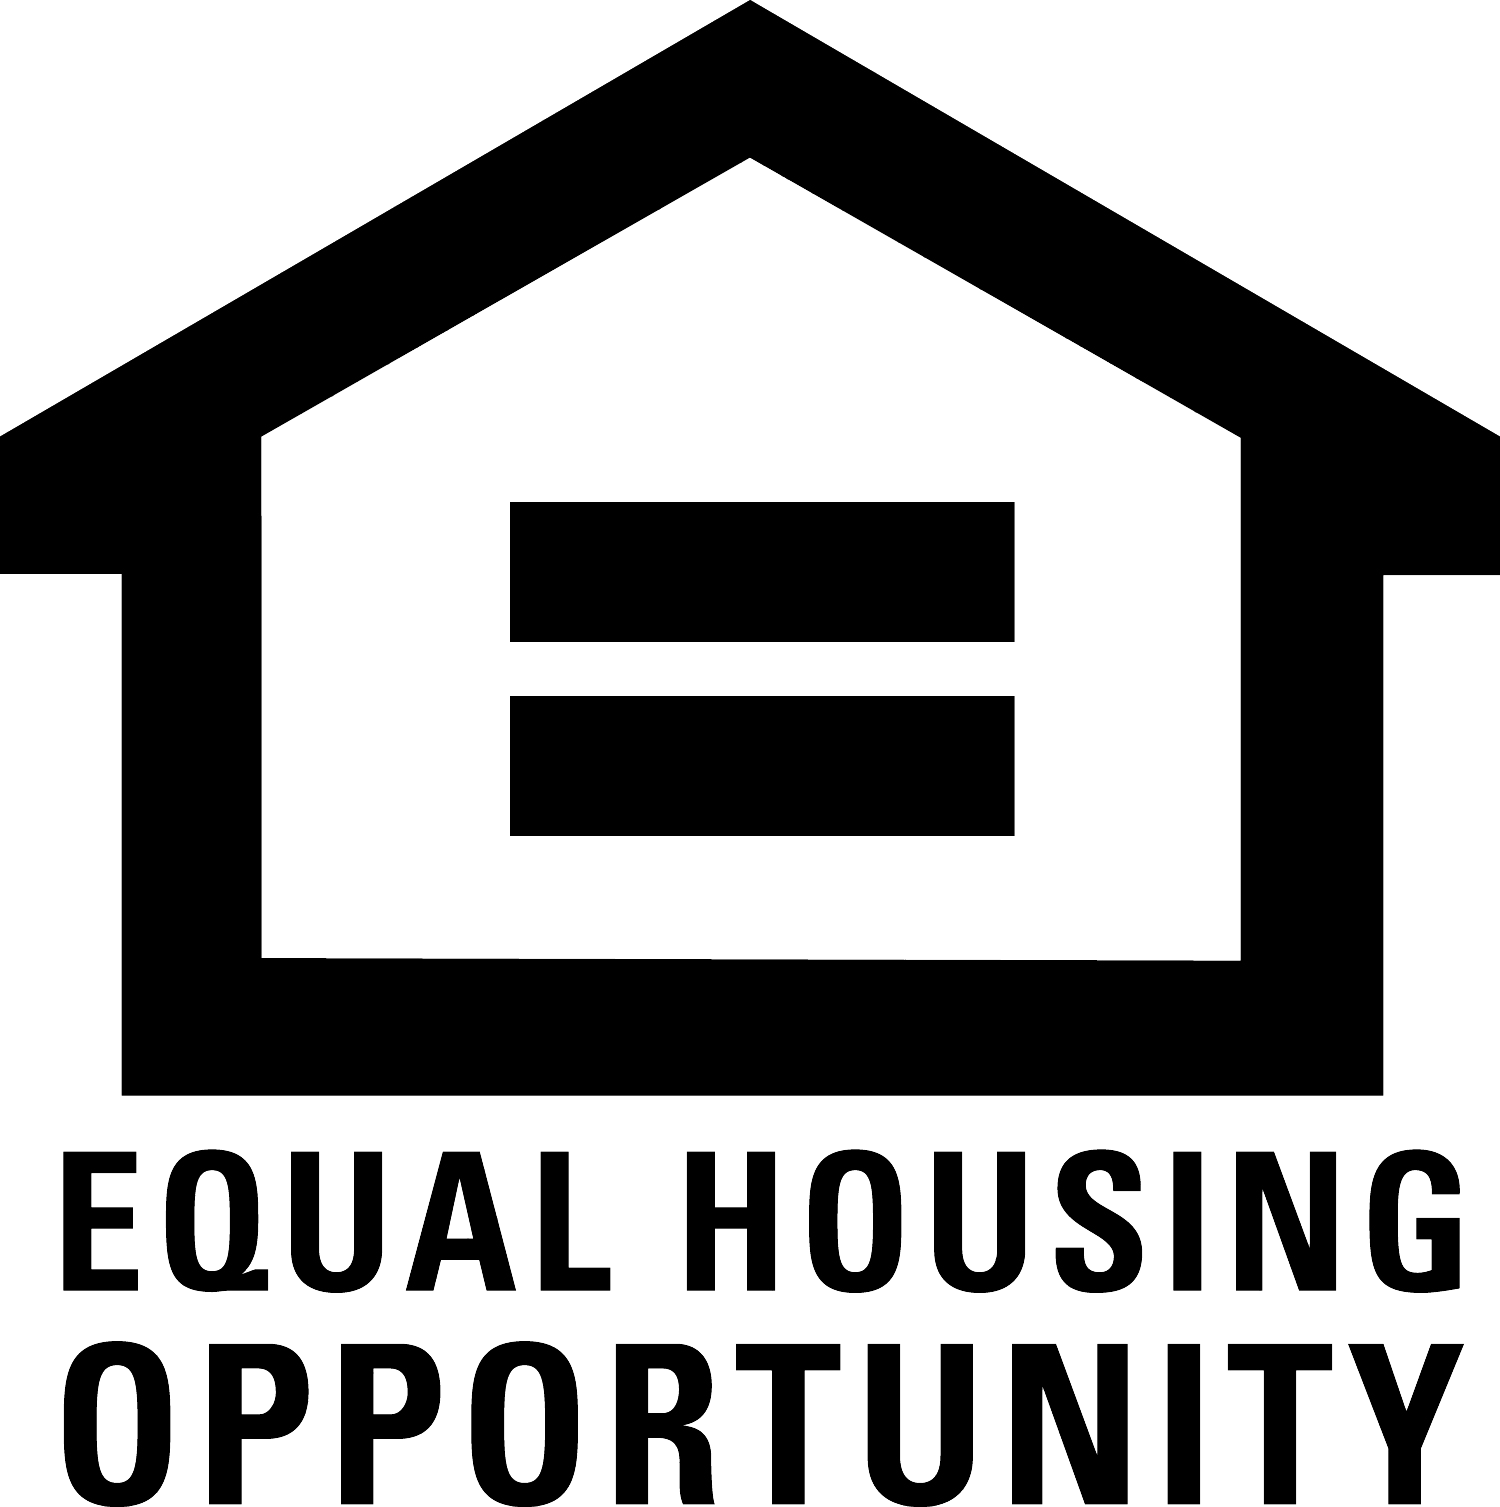 black house icon with equal sign within and equal housing opportunity text underneath